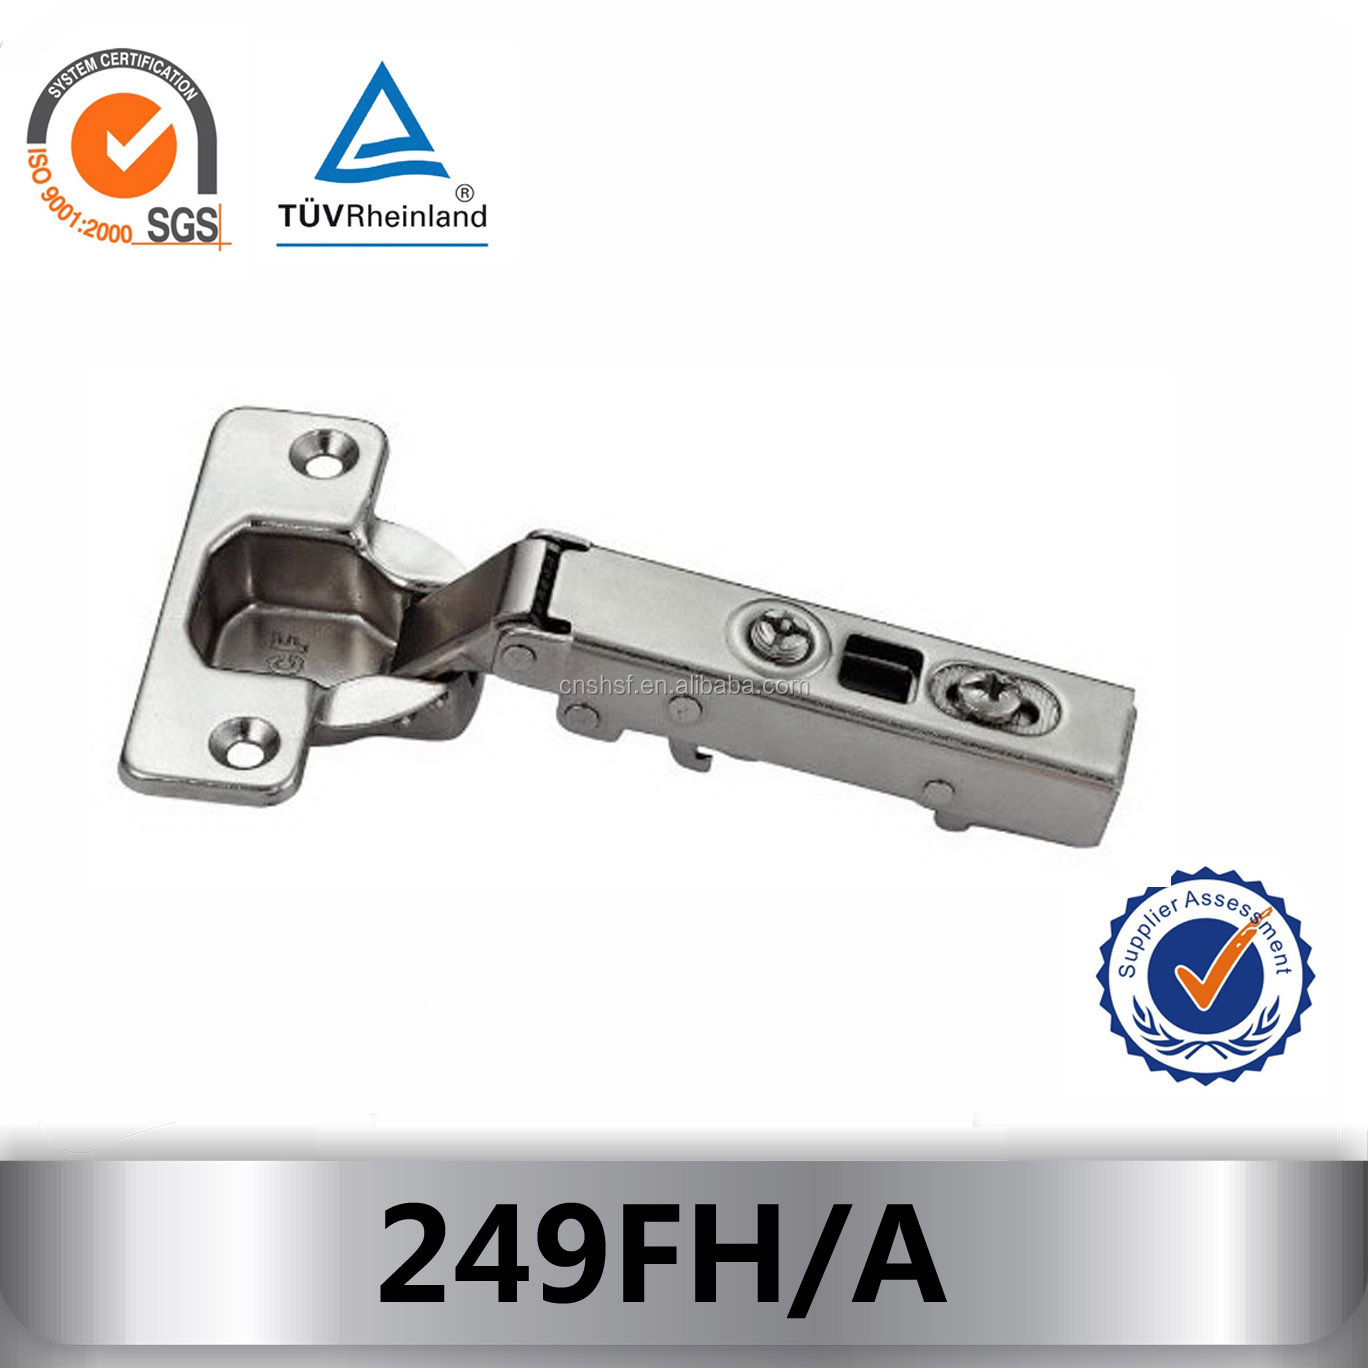 type of door hinge,/concelal furniture cabinet hinge 249FH/A